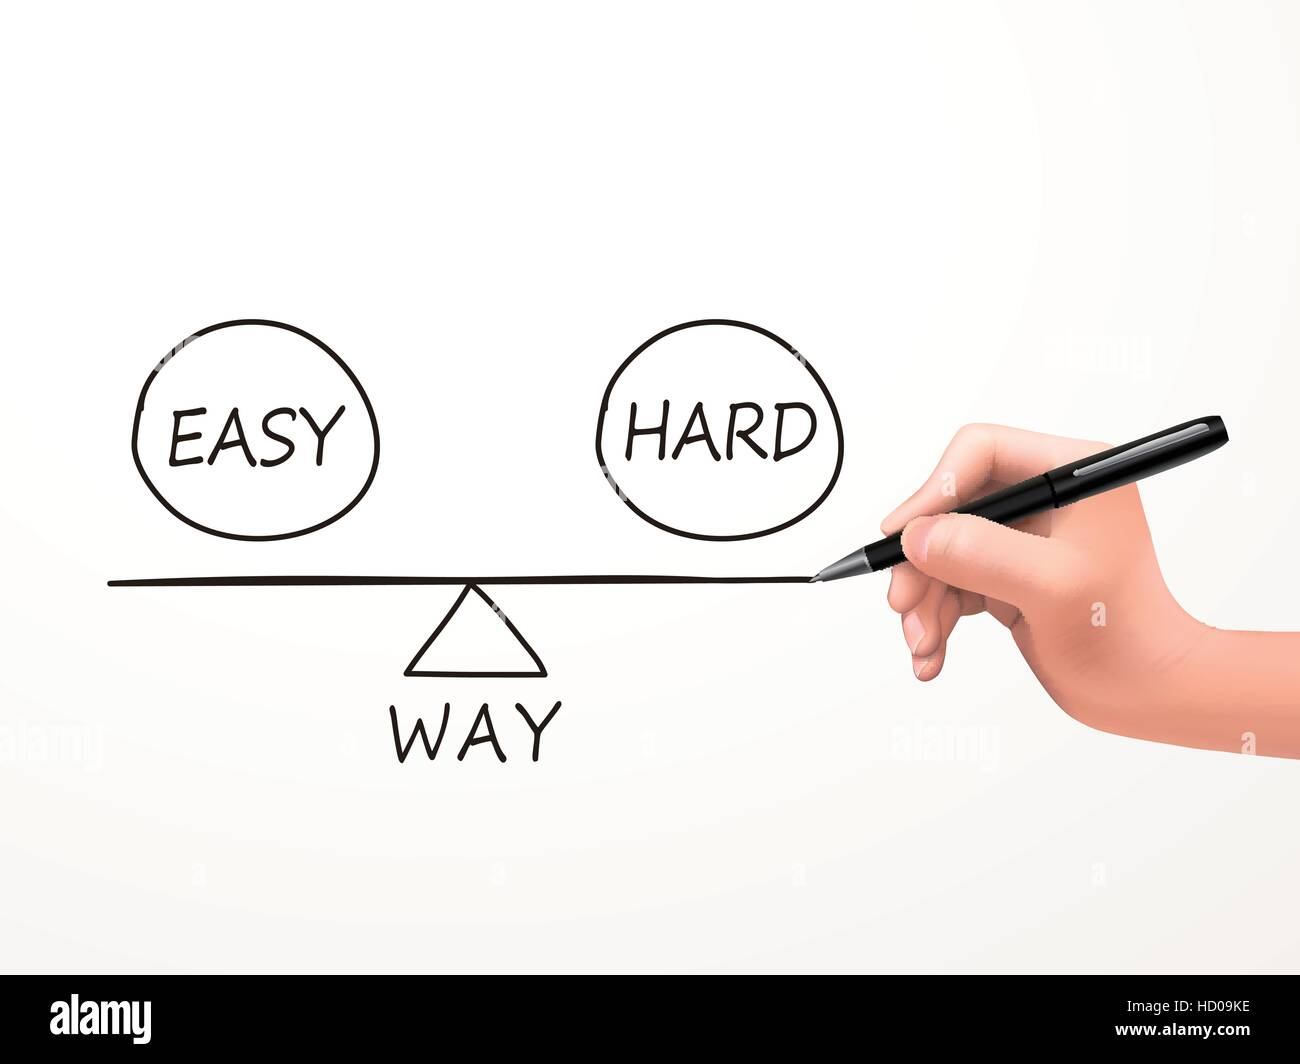 balance between ways of reaching a solution drawn by human hand over white background - Stock Image